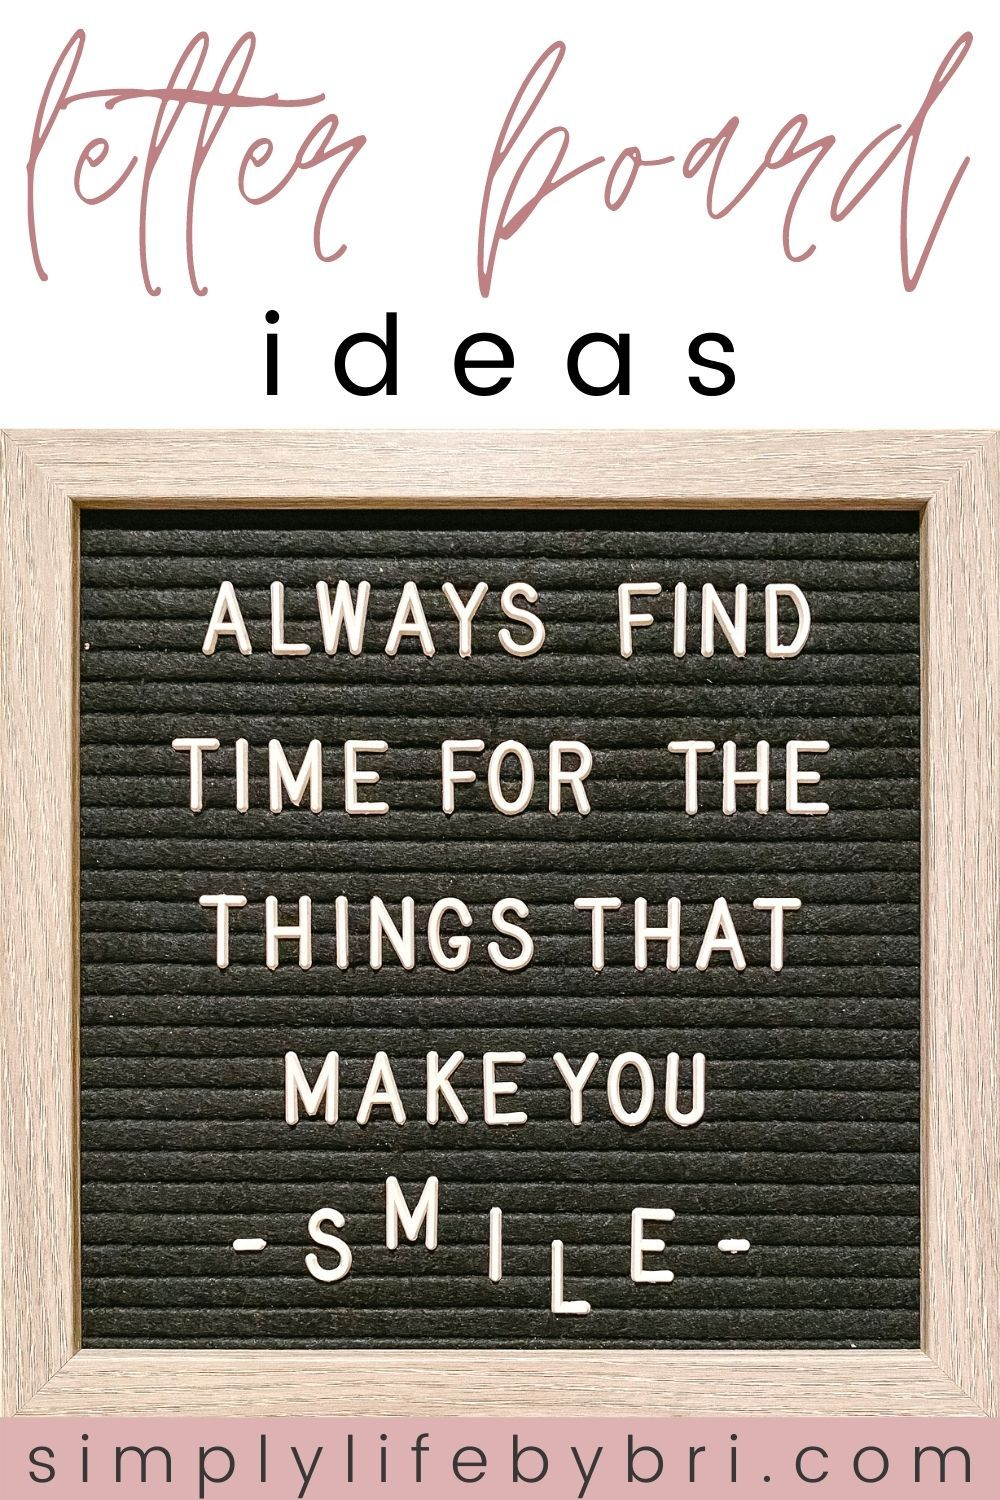 Motivational letter board quotes to get you out of bed   student life